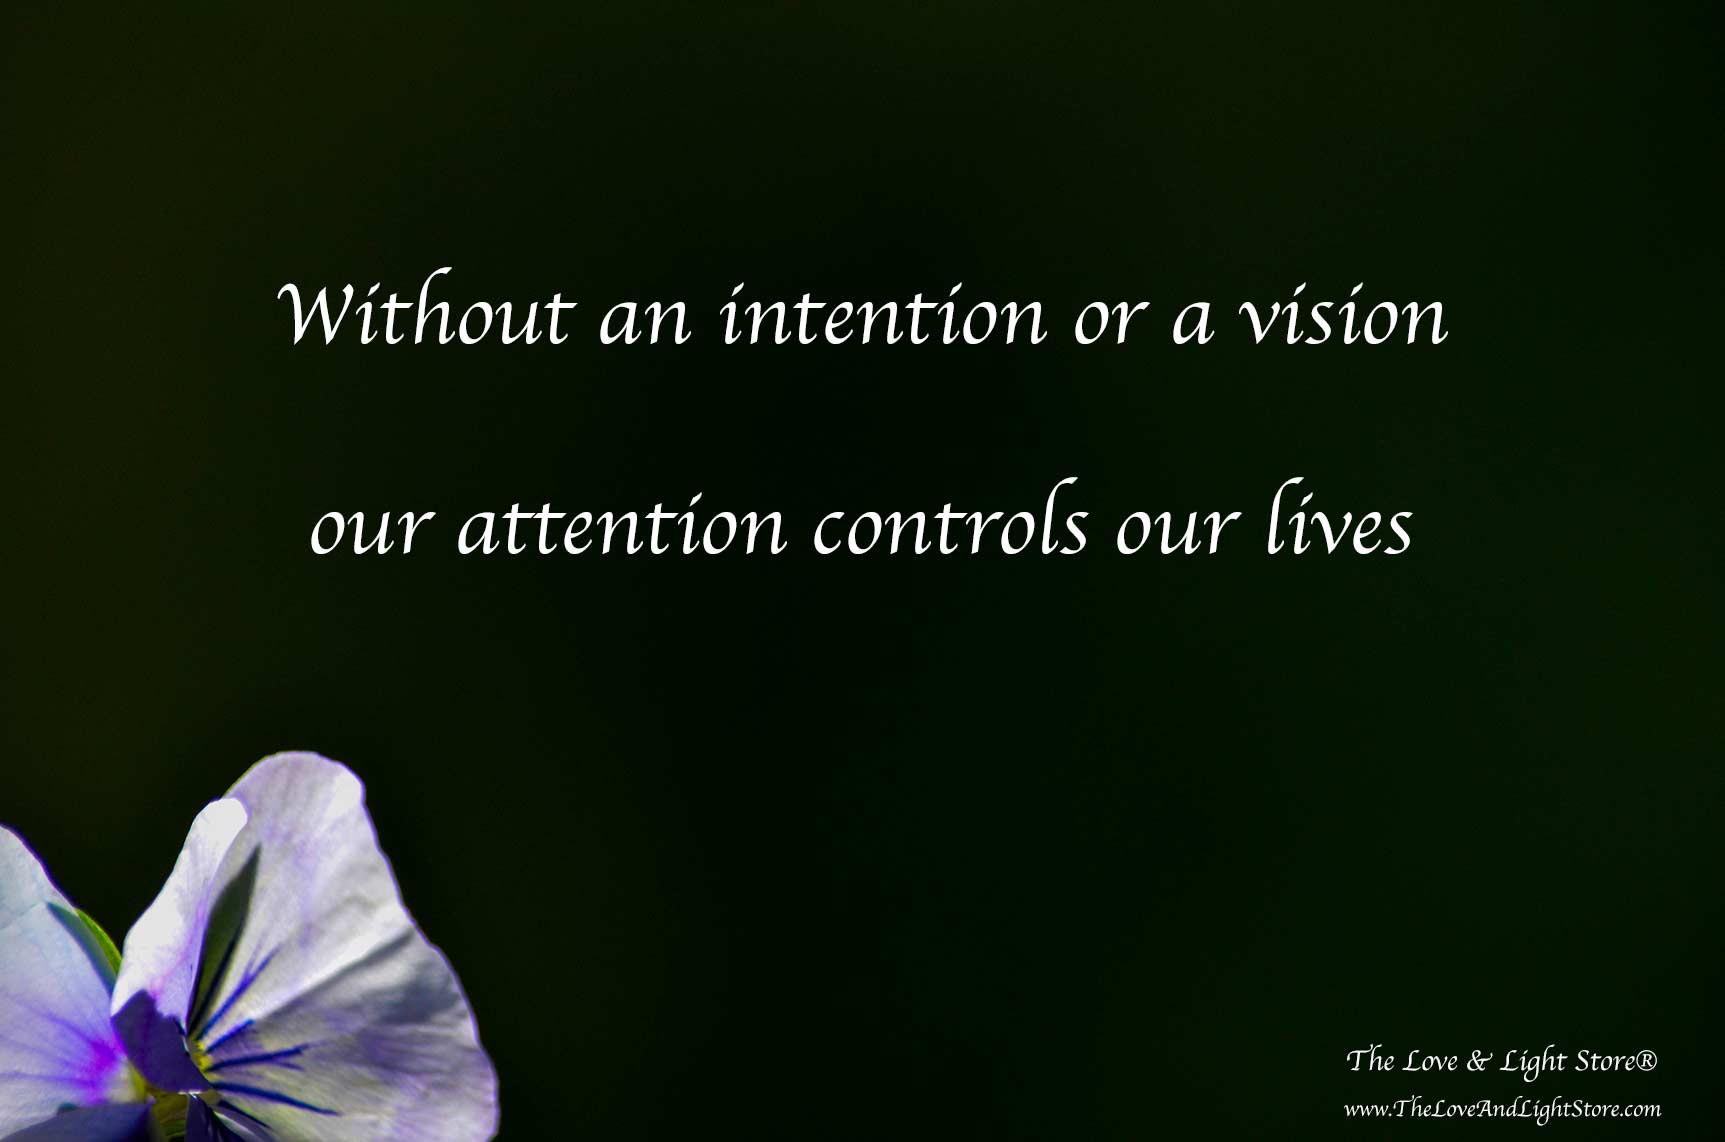 Without intention we let the attention control our lives